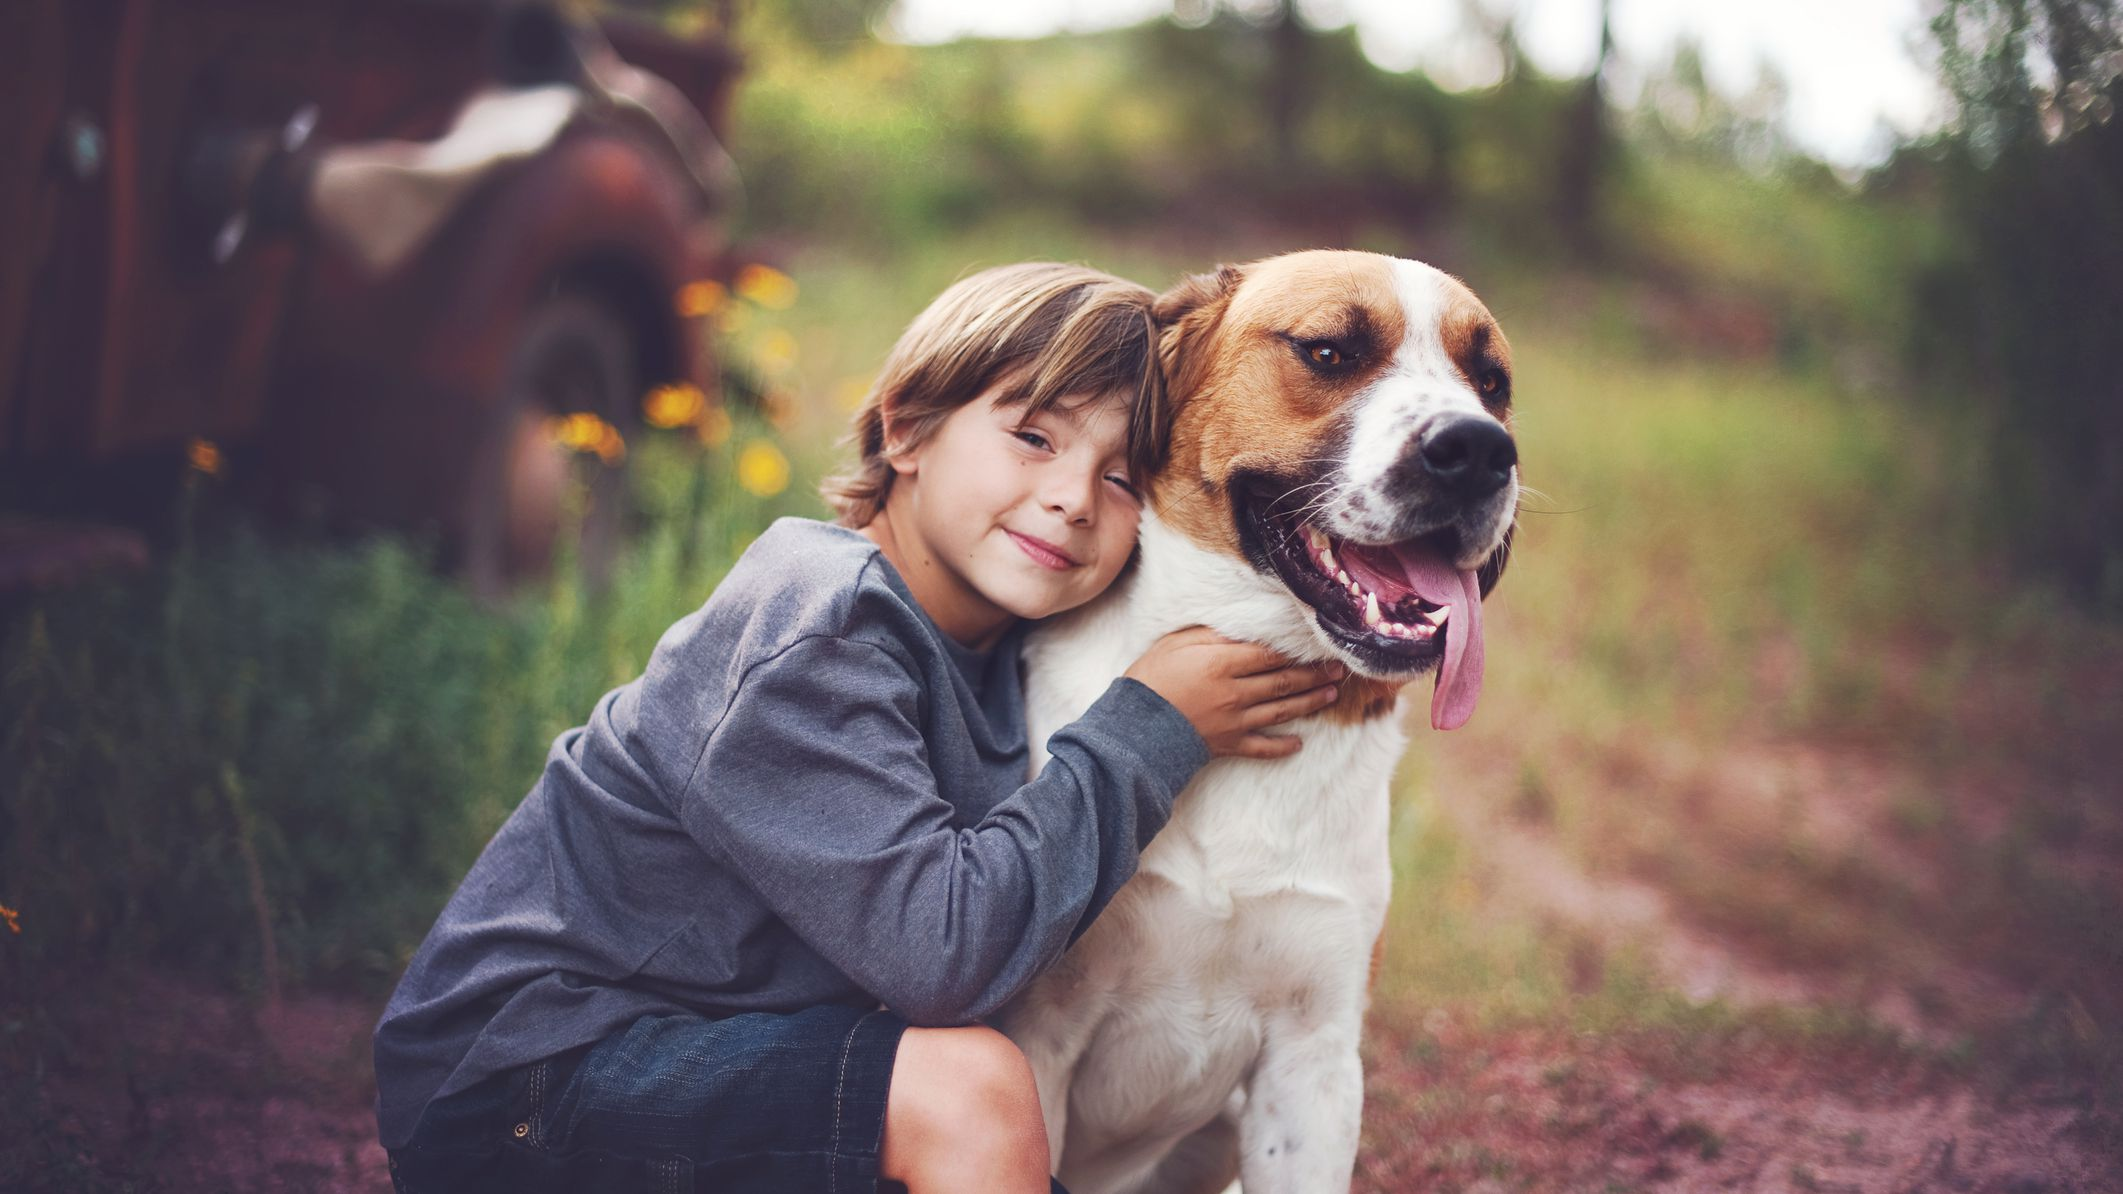 Service Animals for Children With Special Needs